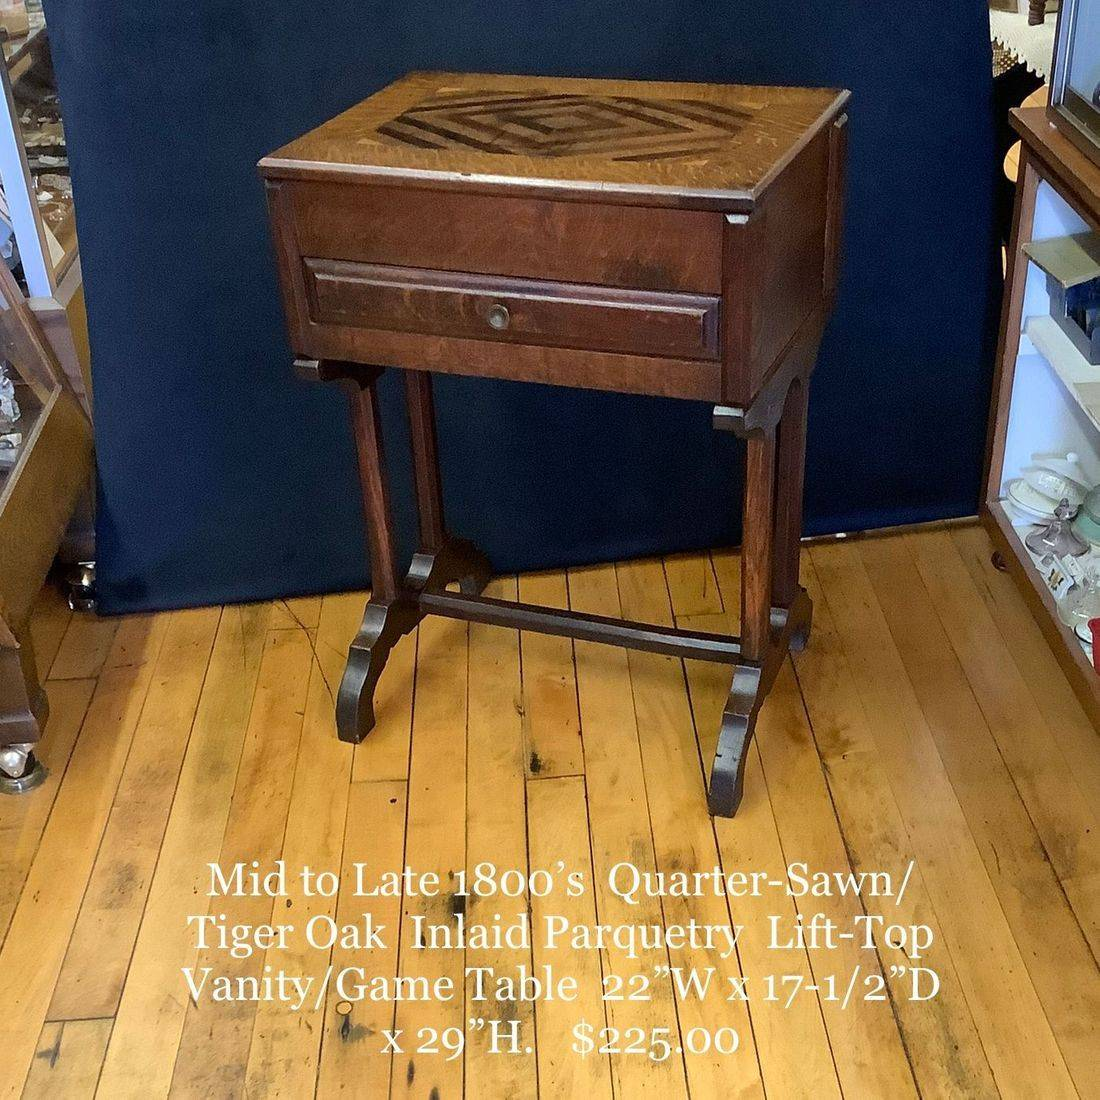 Mid to Late 1800's Quarter-Sawn/Tiger Oak Inlaid Parquetry Lift-Top Vanity/Game Table   $225.00